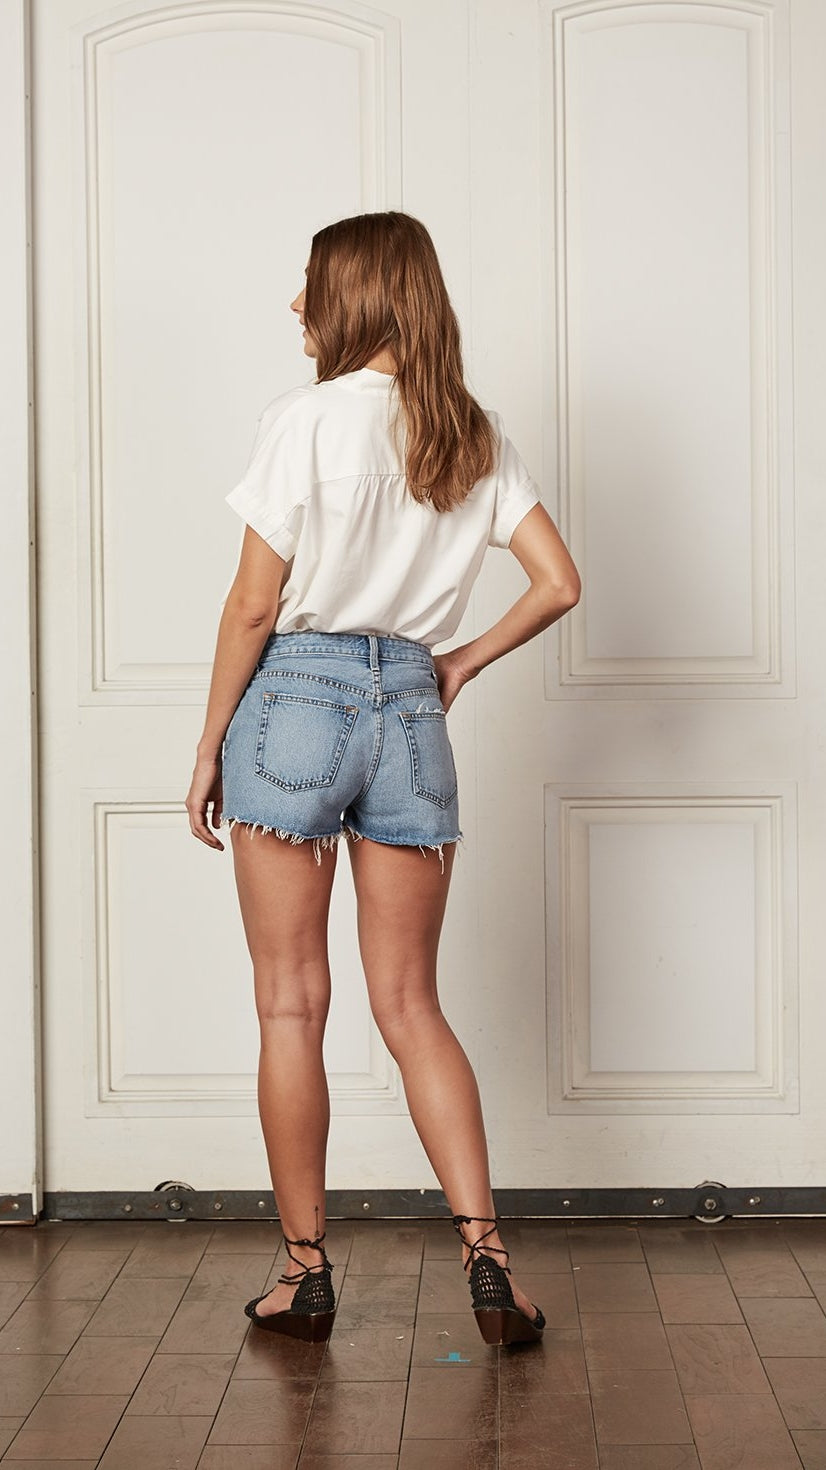 The Cody High Rise Cut Off Shorts by Boyish Jeans